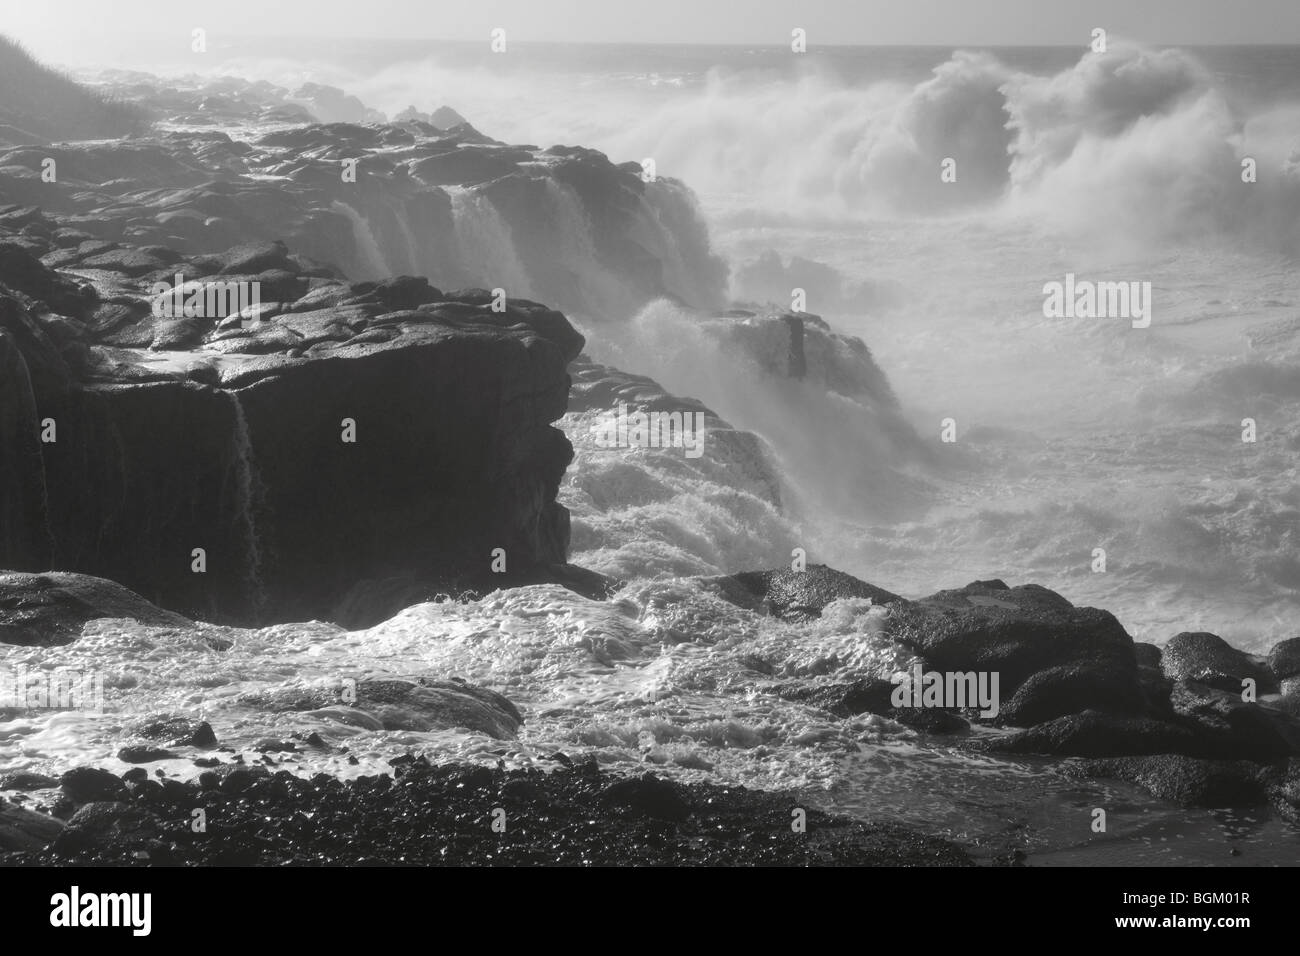 Waves crash on the rocky Oregon coastline - Stock Image